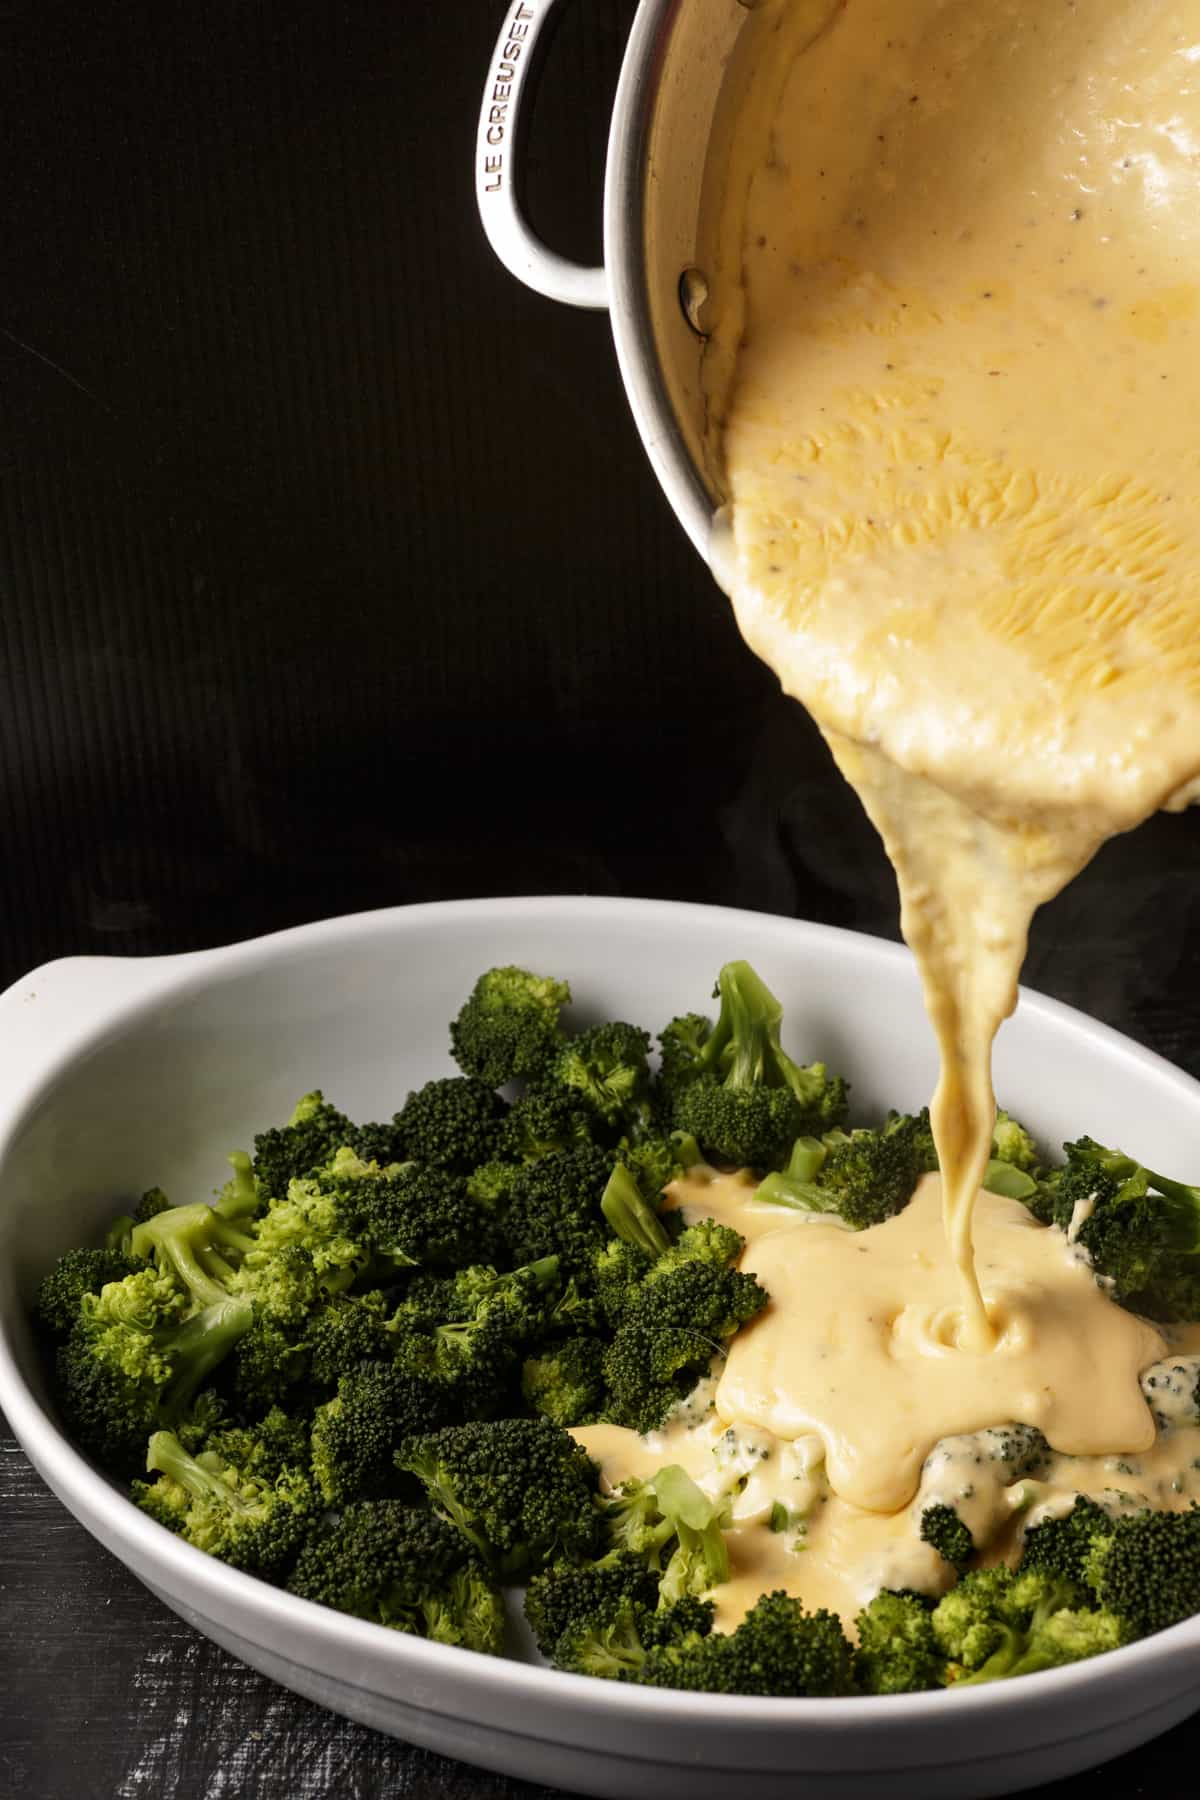 Cheese sauce being poured over broccoli